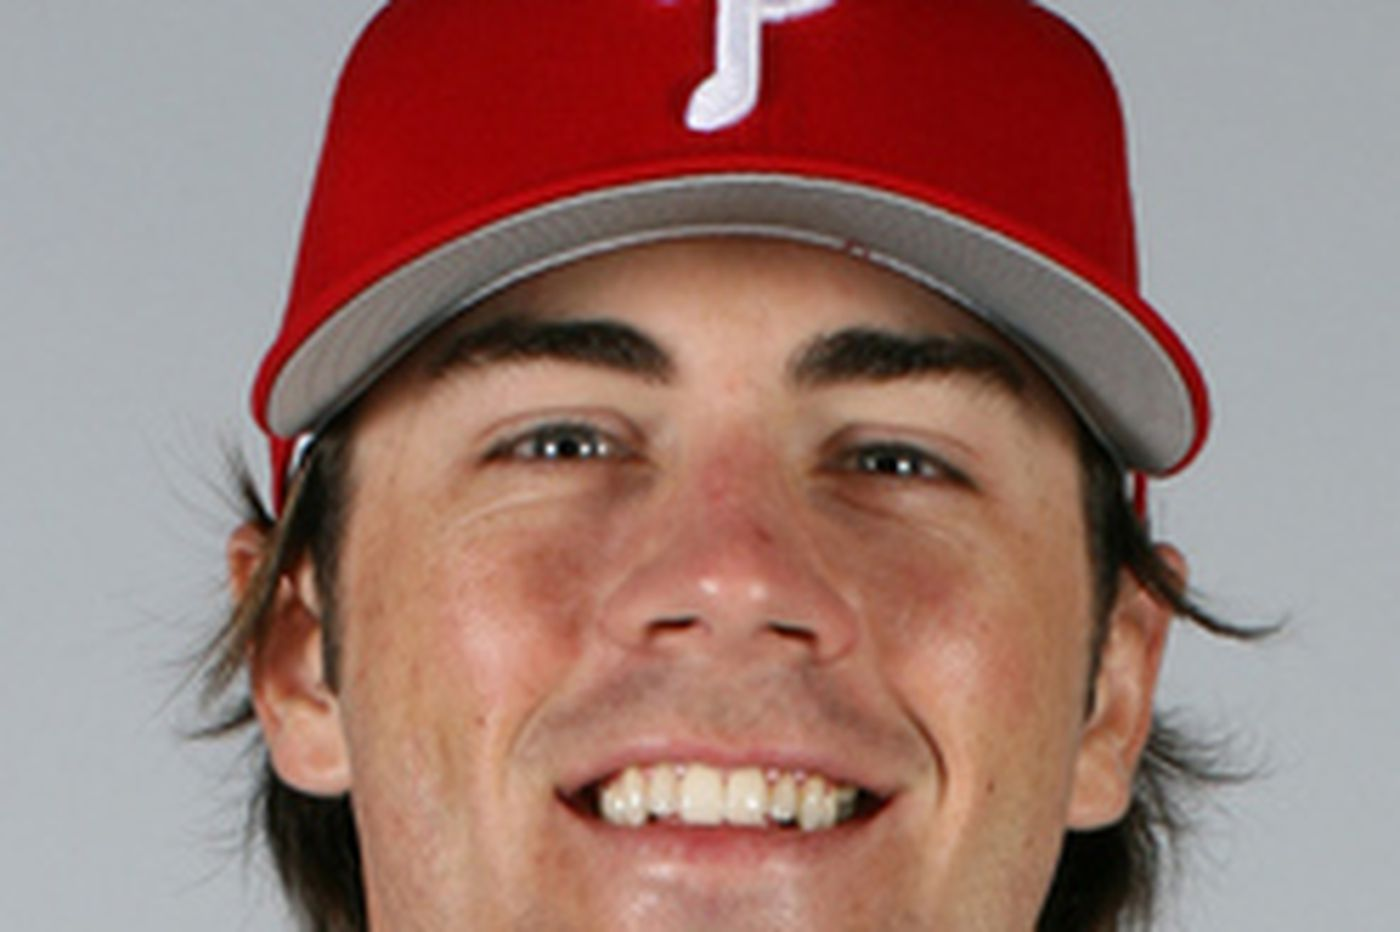 Phillies Notebook: Hamels' stats like night and day for Phillies